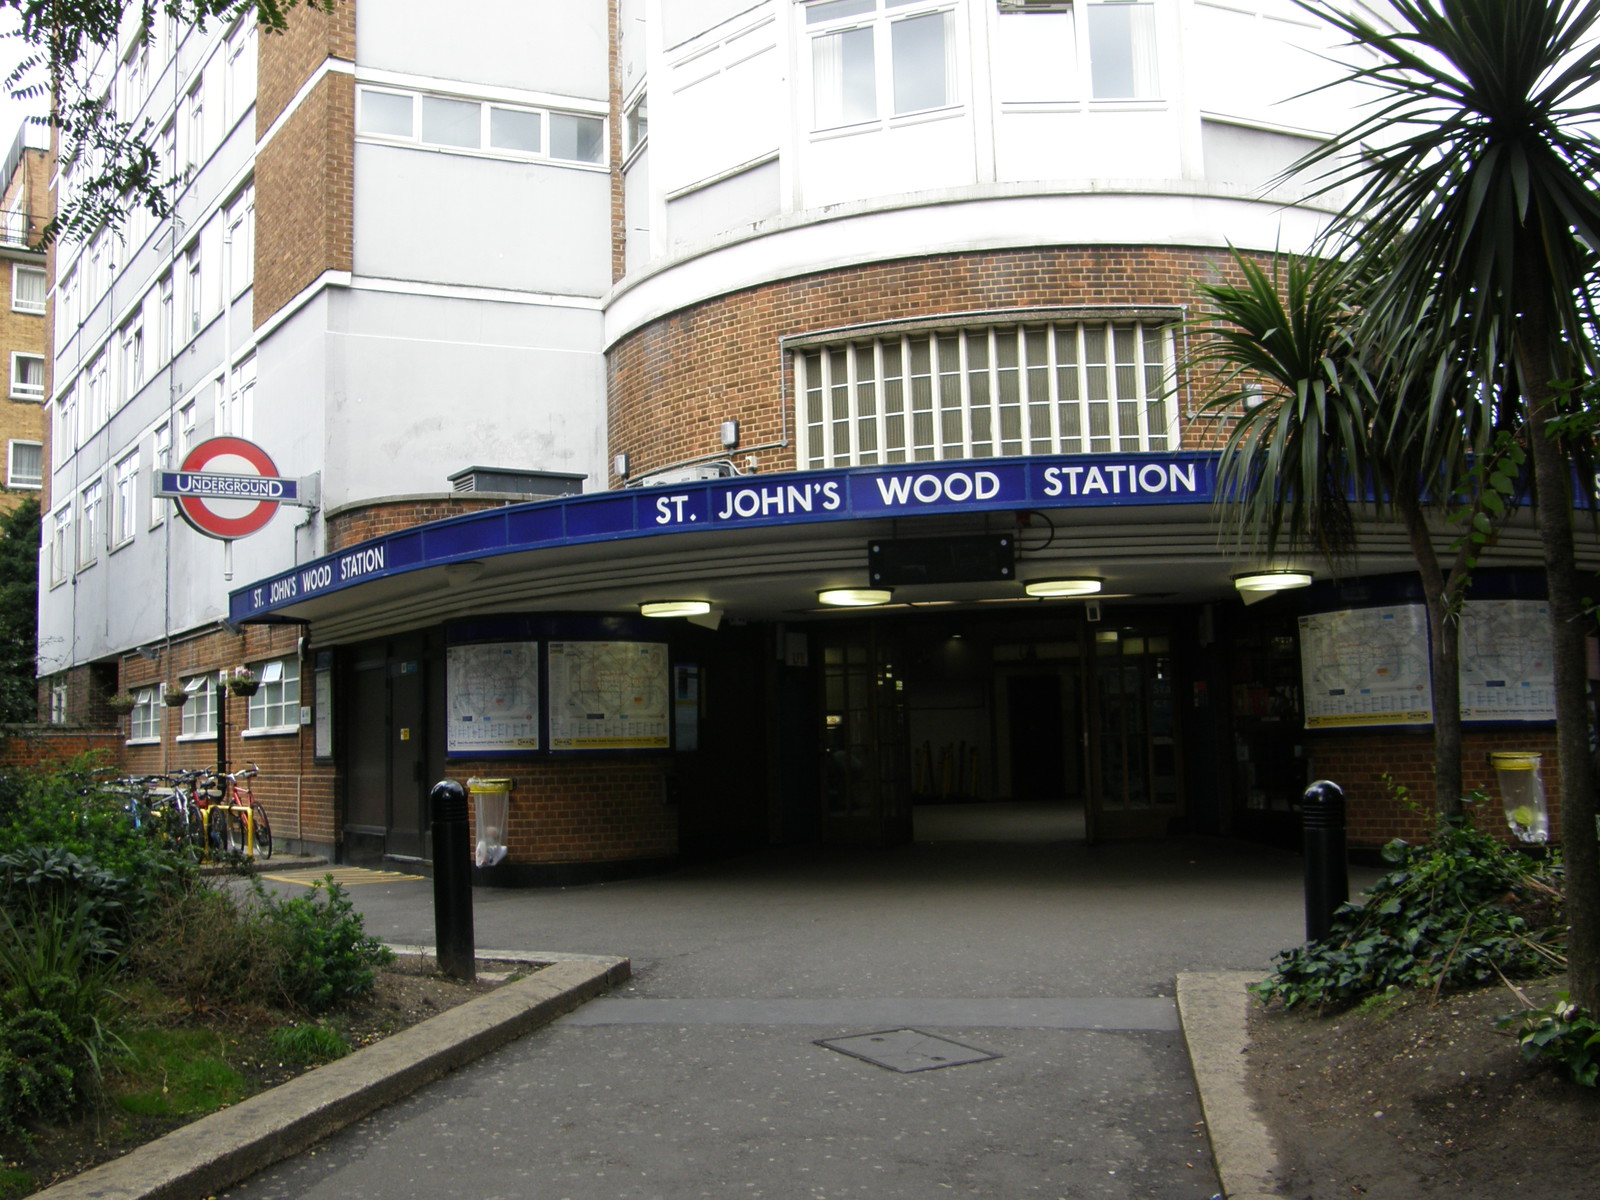 St John's Wood station